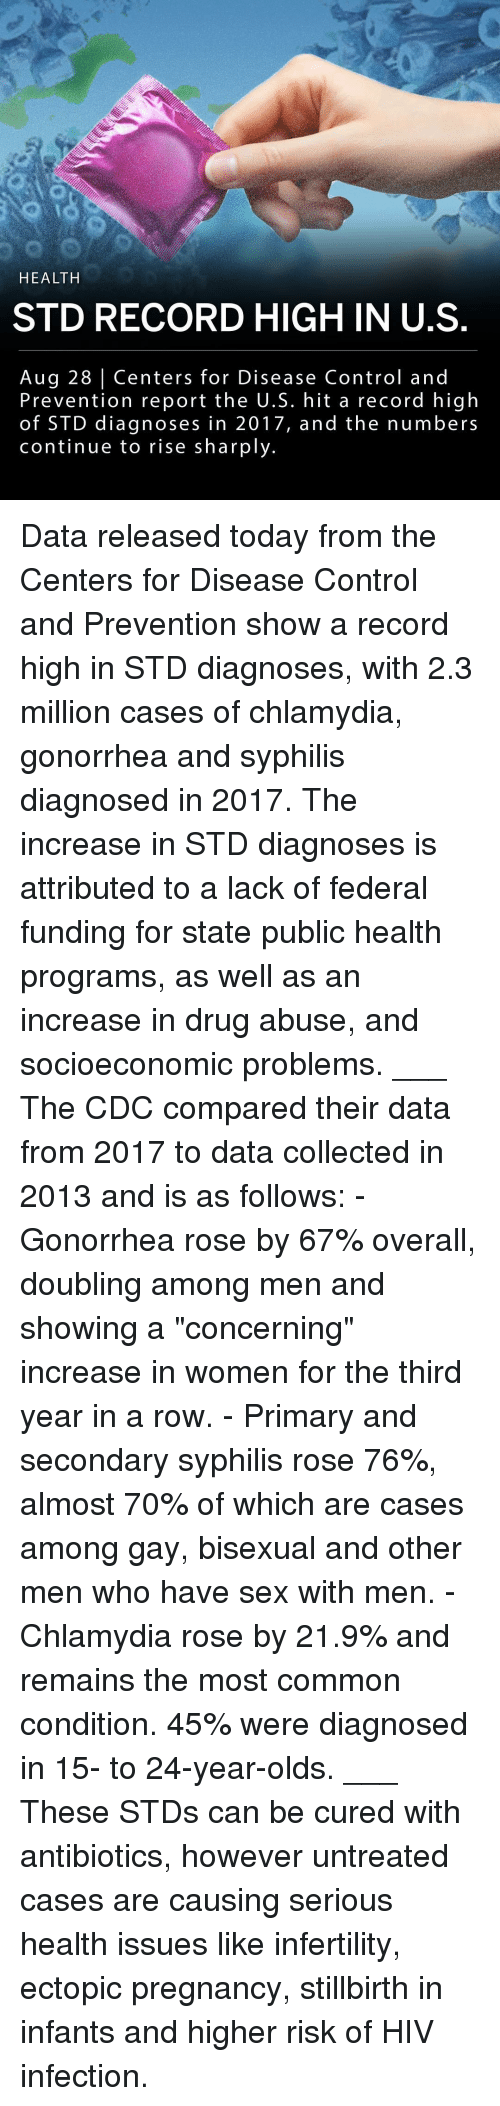 """Memes, Sex, and Control: HEALTH  STD RECORD HIGH IN U.S  Aug 28 Centers for Disease Control and  Prevention report the U.S. hit a record high  of STD diagnoses in 2017, and the numbers  continue to rise sharply. Data released today from the Centers for Disease Control and Prevention show a record high in STD diagnoses, with 2.3 million cases of chlamydia, gonorrhea and syphilis diagnosed in 2017. The increase in STD diagnoses is attributed to a lack of federal funding for state public health programs, as well as an increase in drug abuse, and socioeconomic problems. ___ The CDC compared their data from 2017 to data collected in 2013 and is as follows: - Gonorrhea rose by 67% overall, doubling among men and showing a """"concerning"""" increase in women for the third year in a row. - Primary and secondary syphilis rose 76%, almost 70% of which are cases among gay, bisexual and other men who have sex with men. - Chlamydia rose by 21.9% and remains the most common condition. 45% were diagnosed in 15- to 24-year-olds. ___ These STDs can be cured with antibiotics, however untreated cases are causing serious health issues like infertility, ectopic pregnancy, stillbirth in infants and higher risk of HIV infection."""